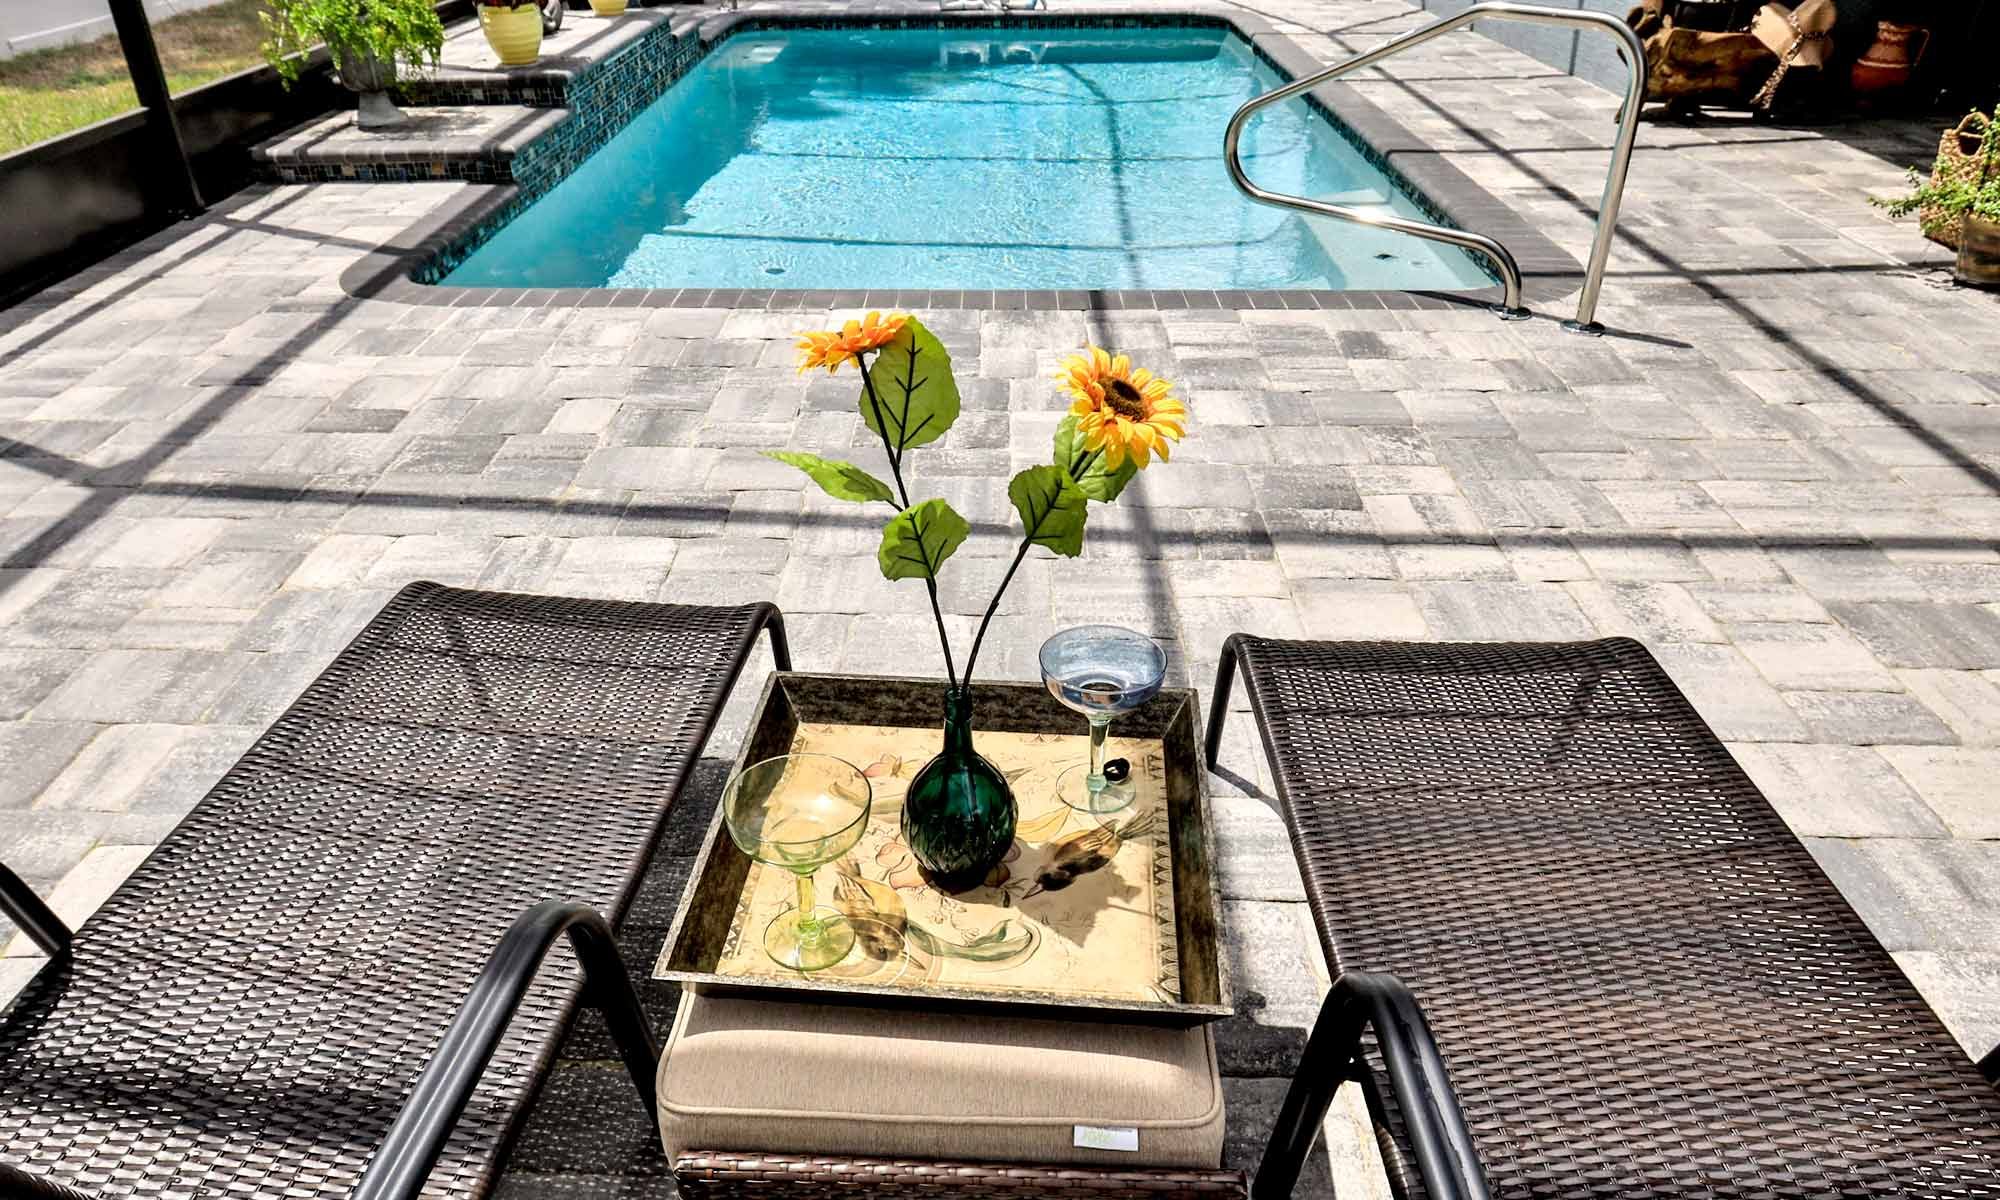 New Pool Construction in Palm Coast | Amaral Homes and Pools